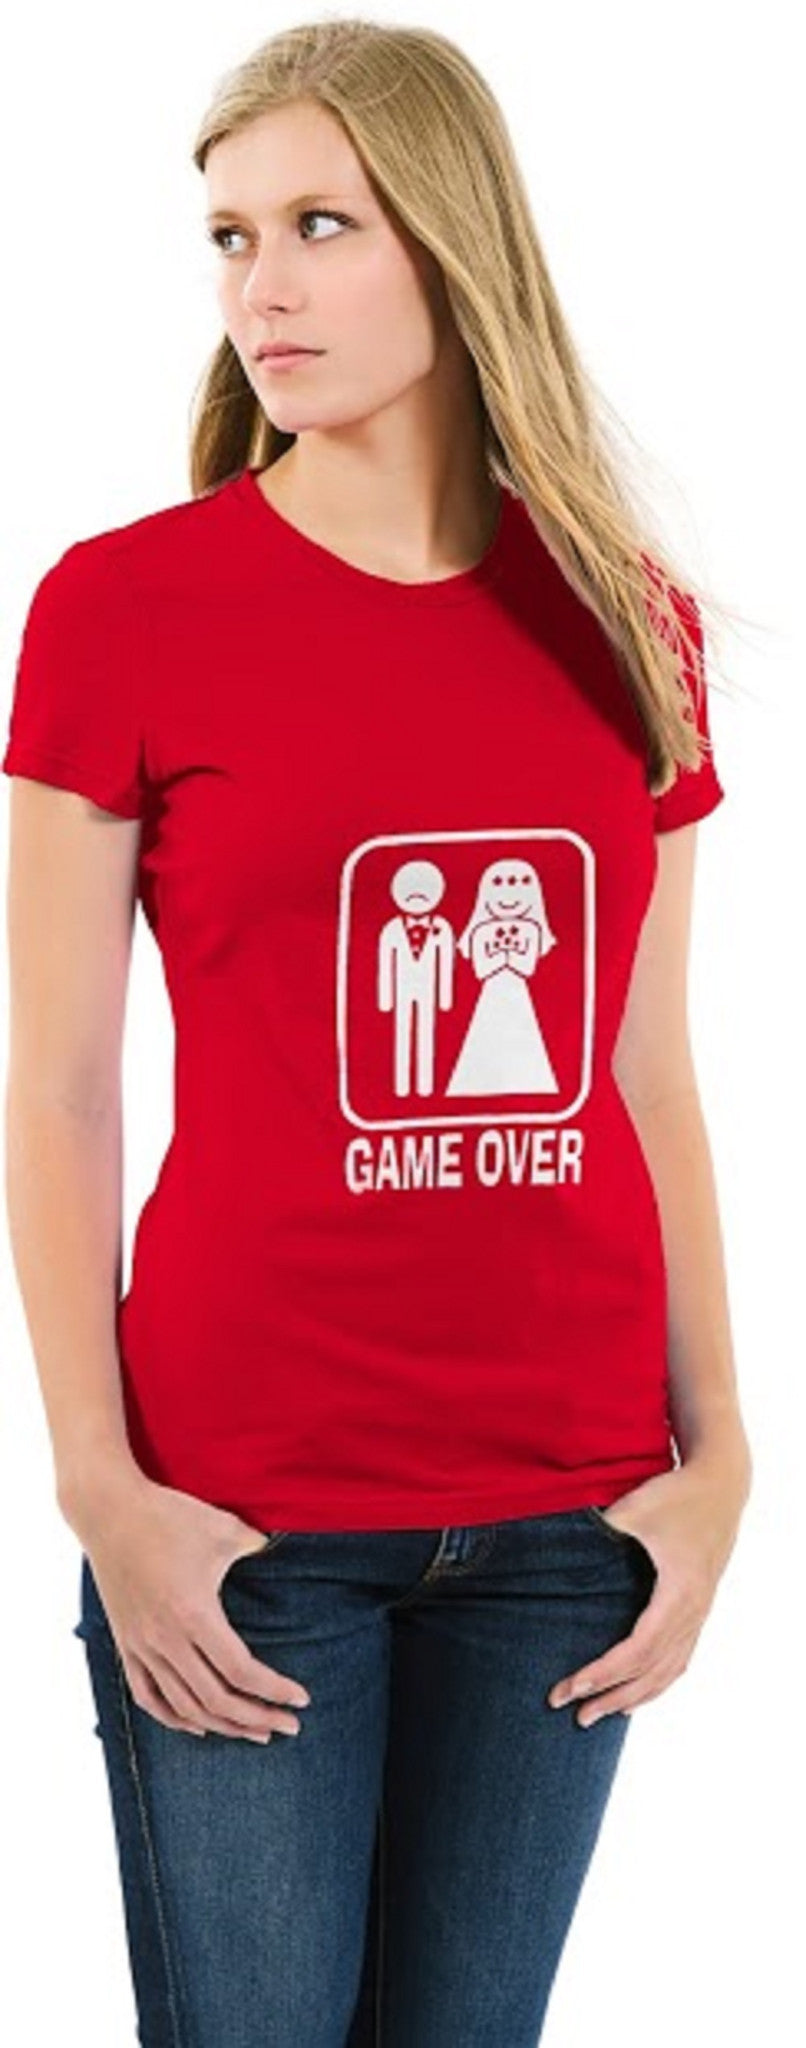 Game Over Ladies T-shirt Red